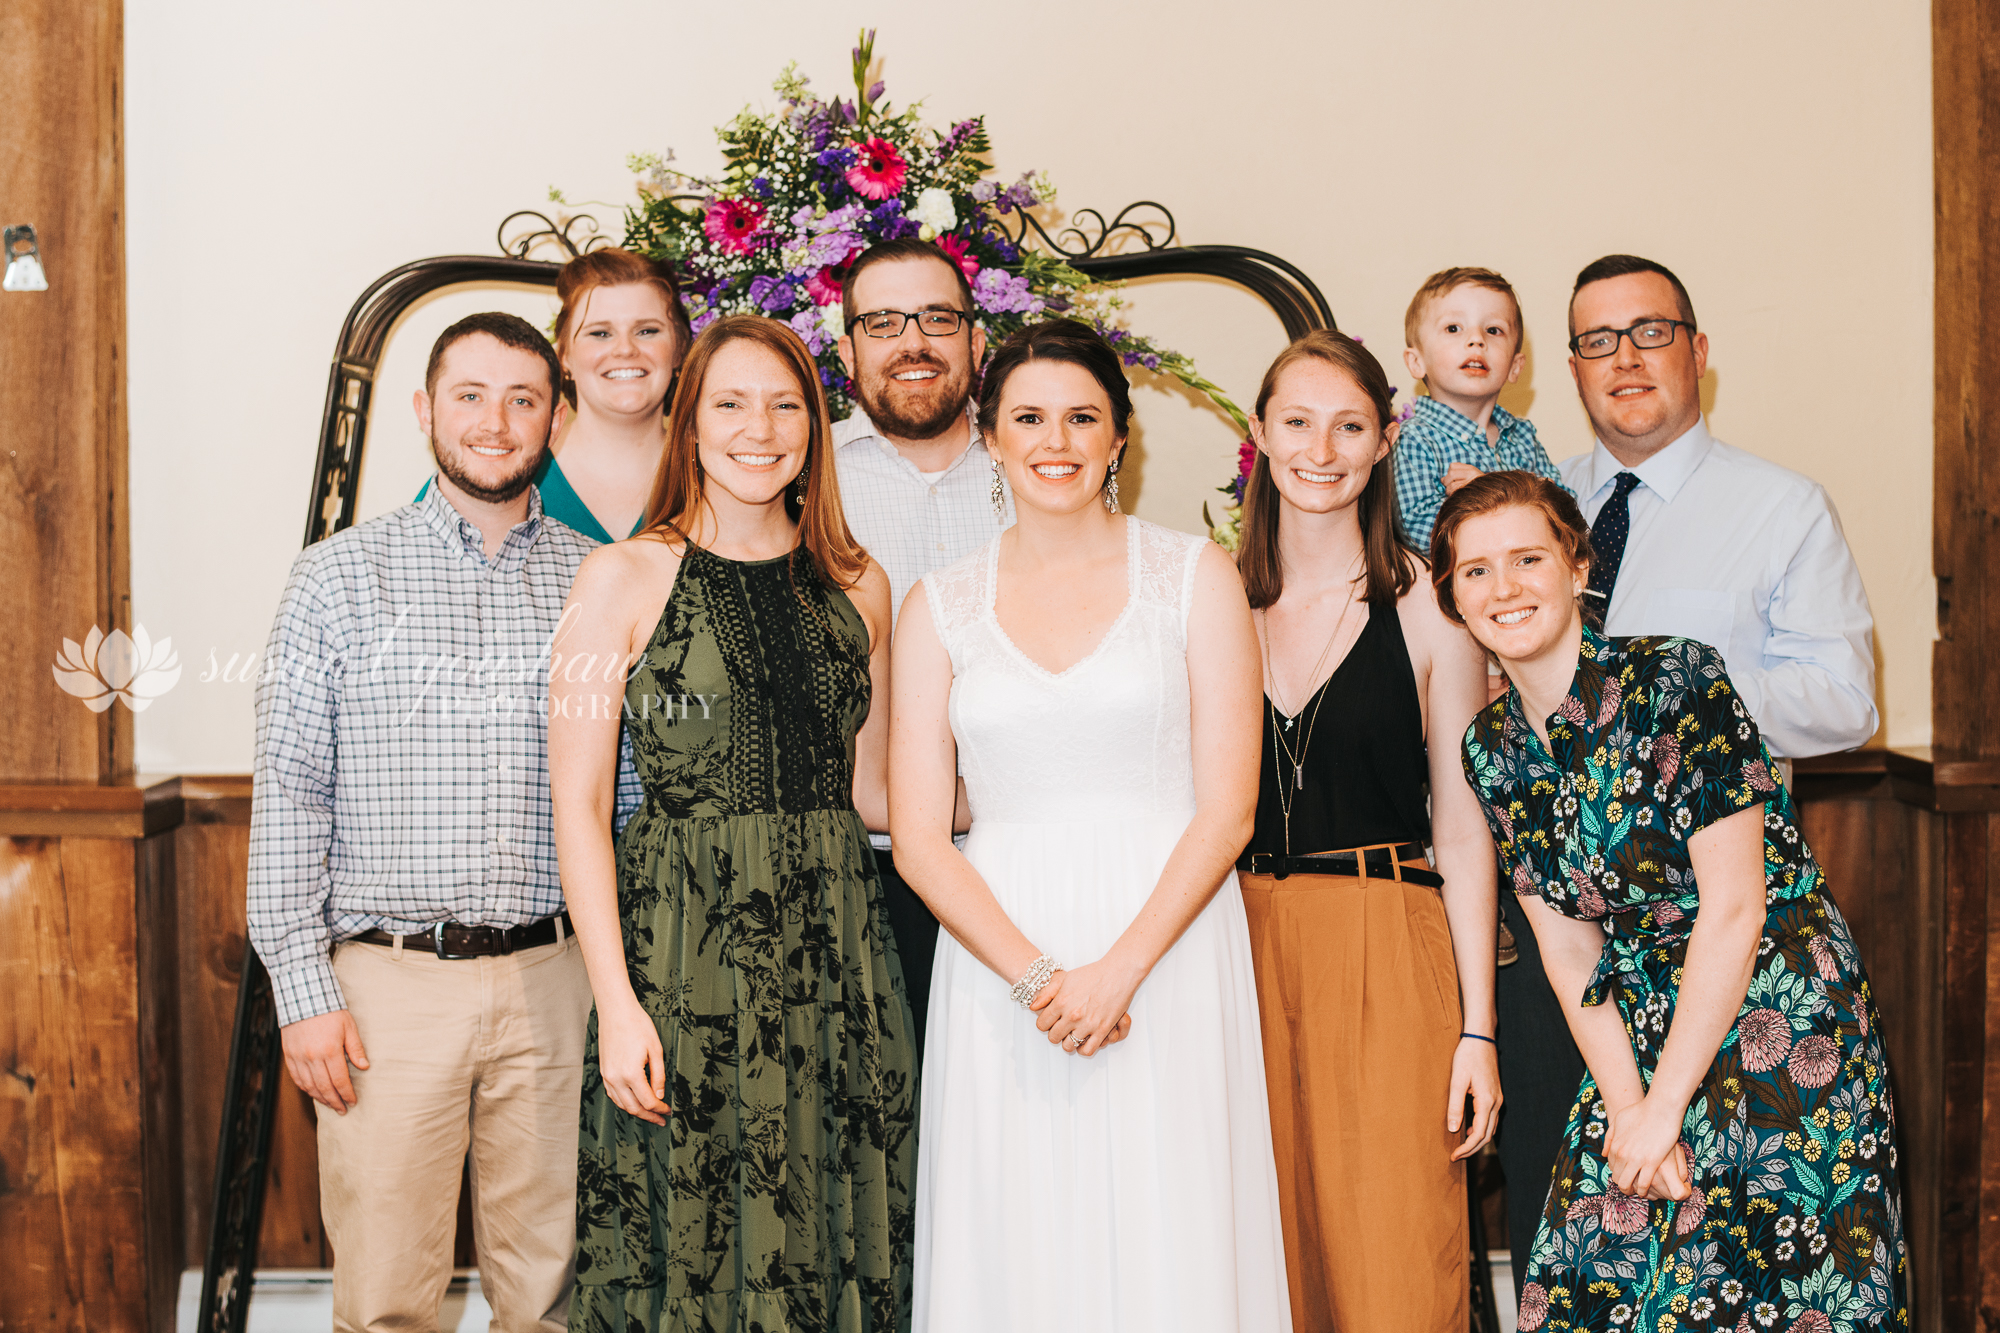 Adena and  Erik Wedding 05-17-2019 SLY Photography-111.jpg